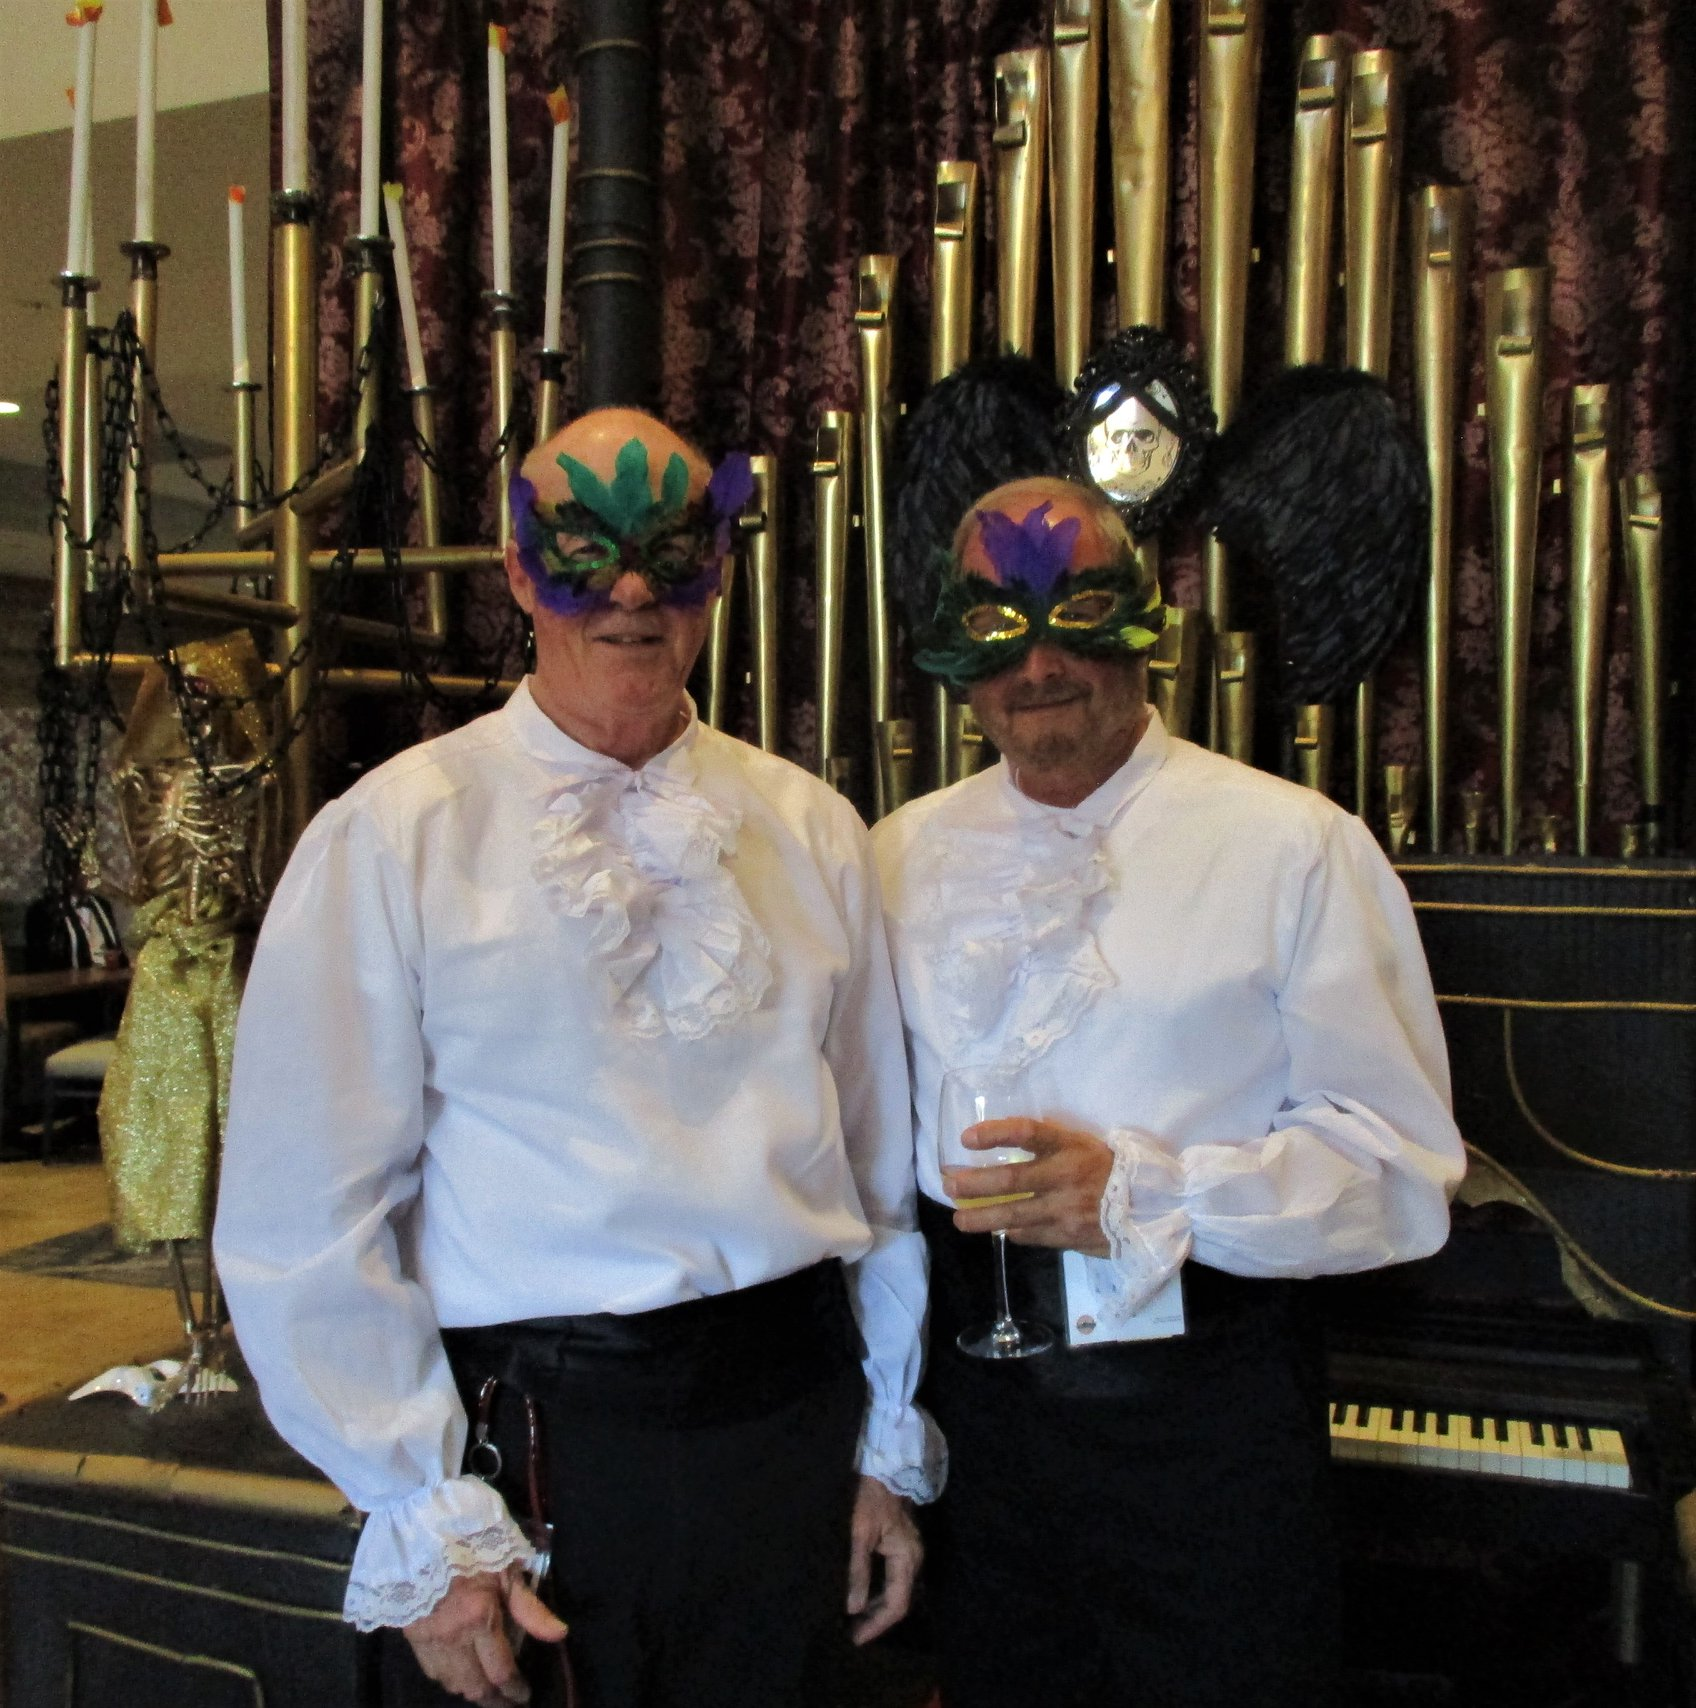 Masquerade Ball - Jay and Michael